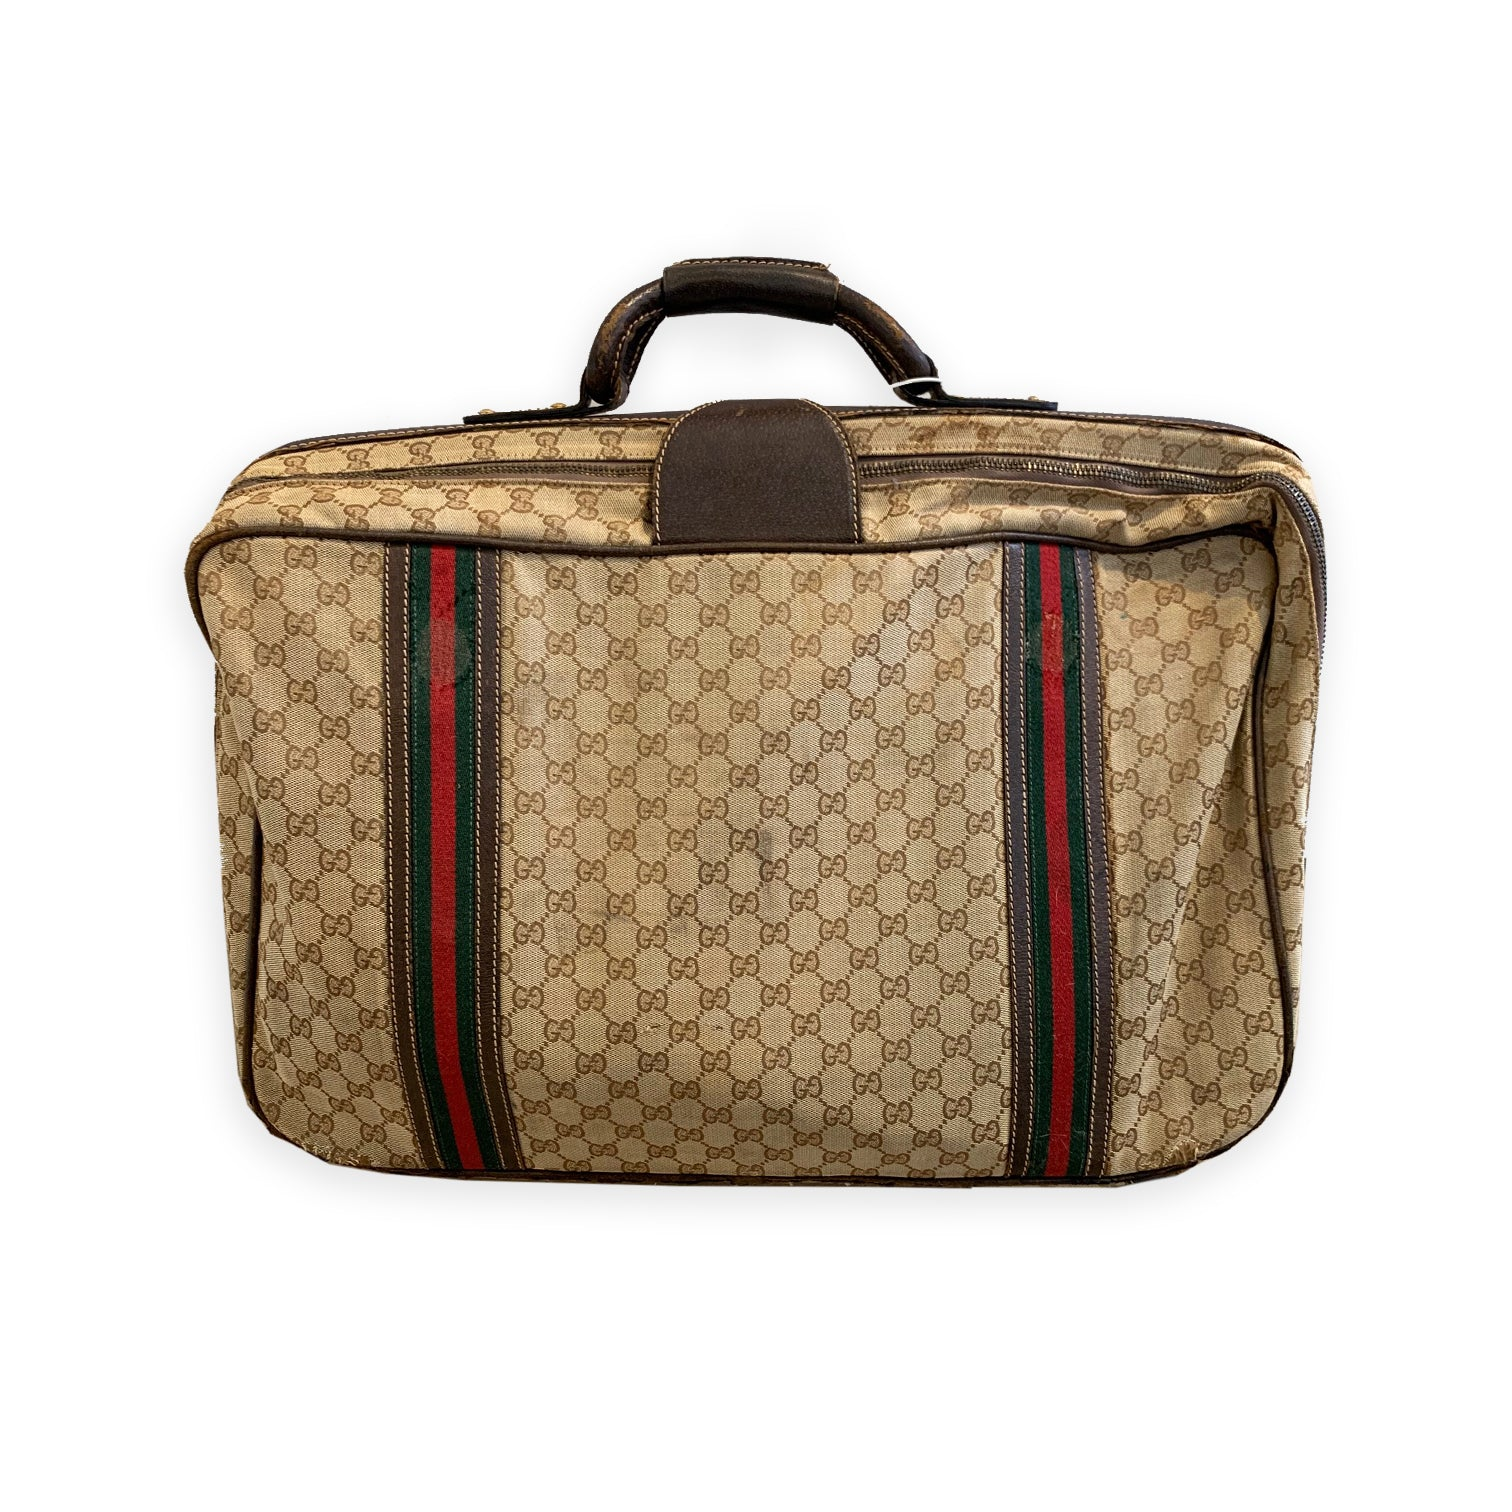 Gucci Vintage Soft Luggage